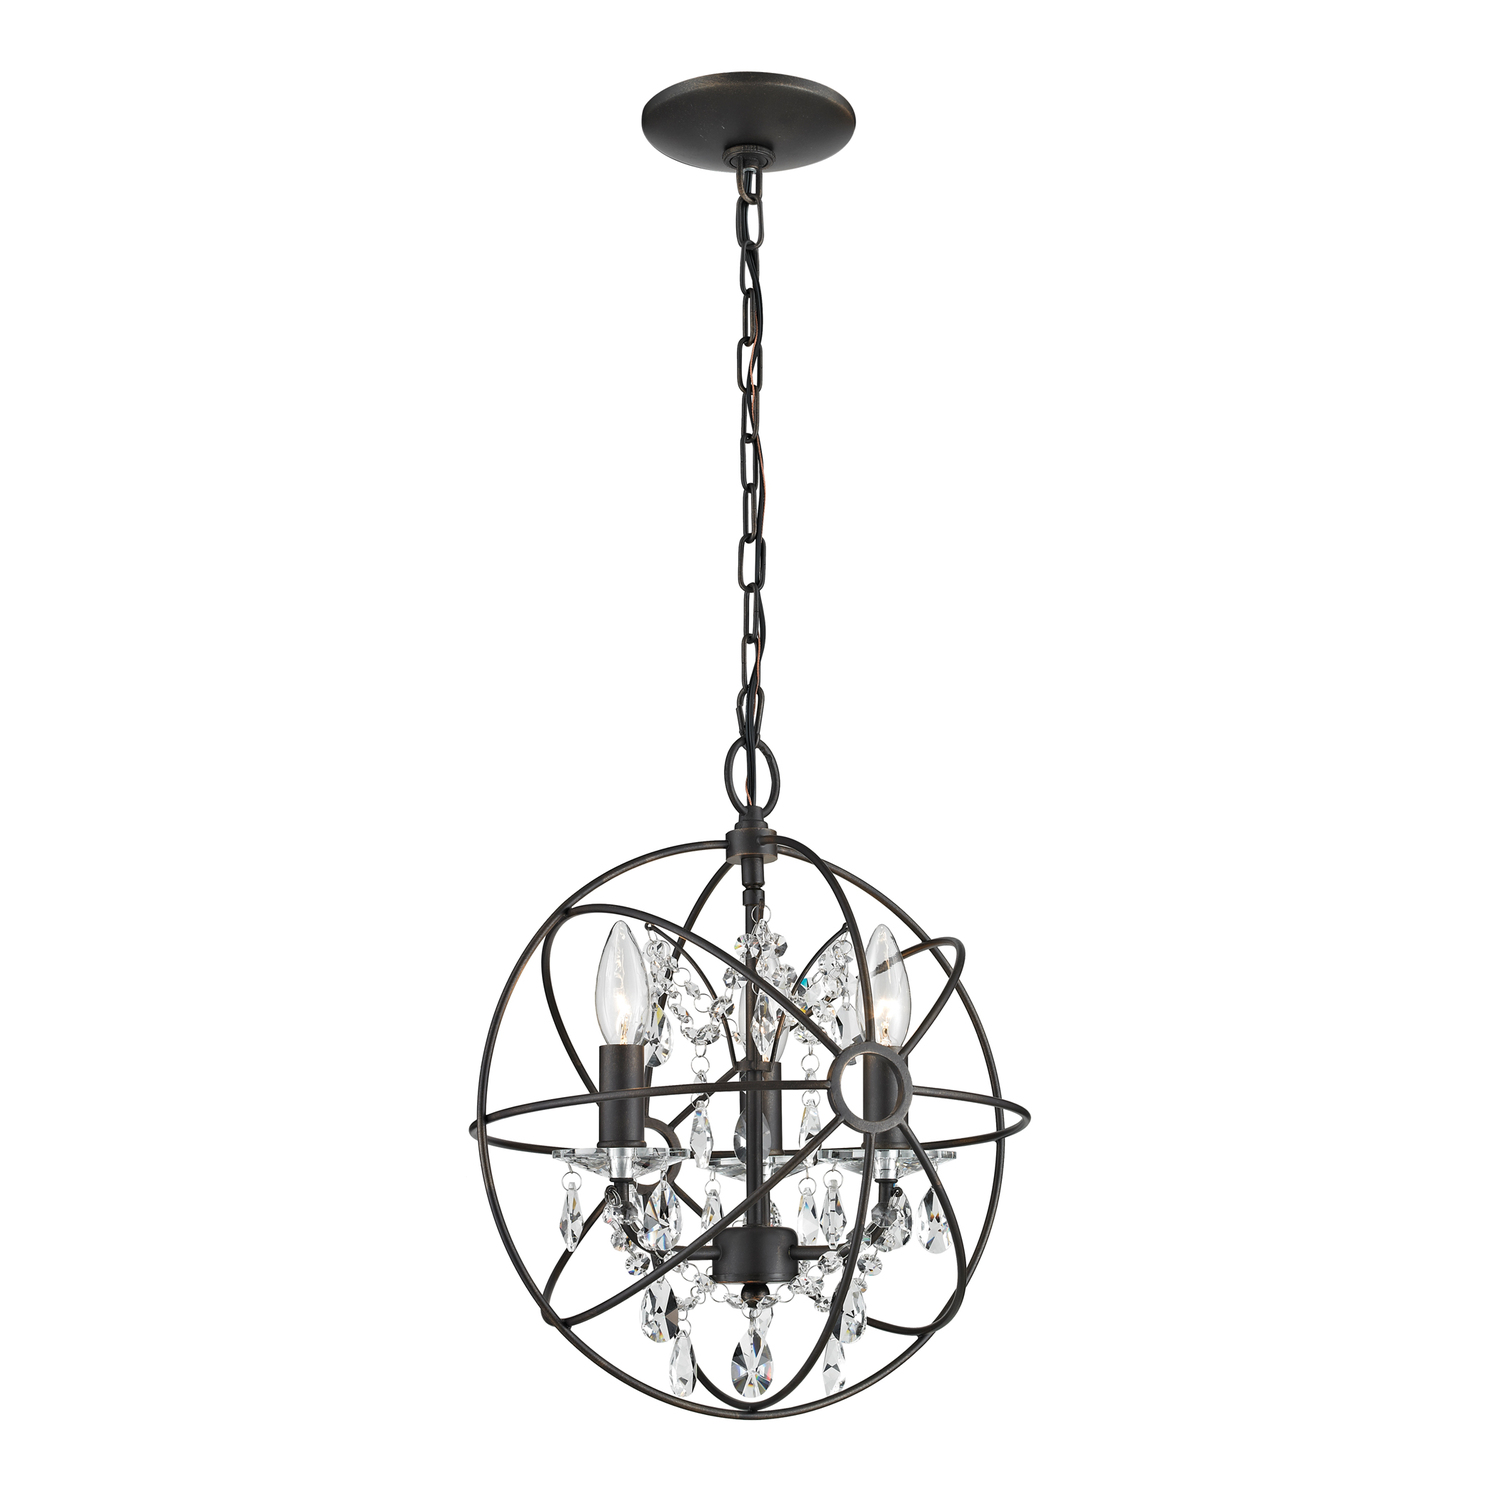 bathroom pendant lighting double style guide on how to design a black and white bathroom introduced cafe lighting living miccah